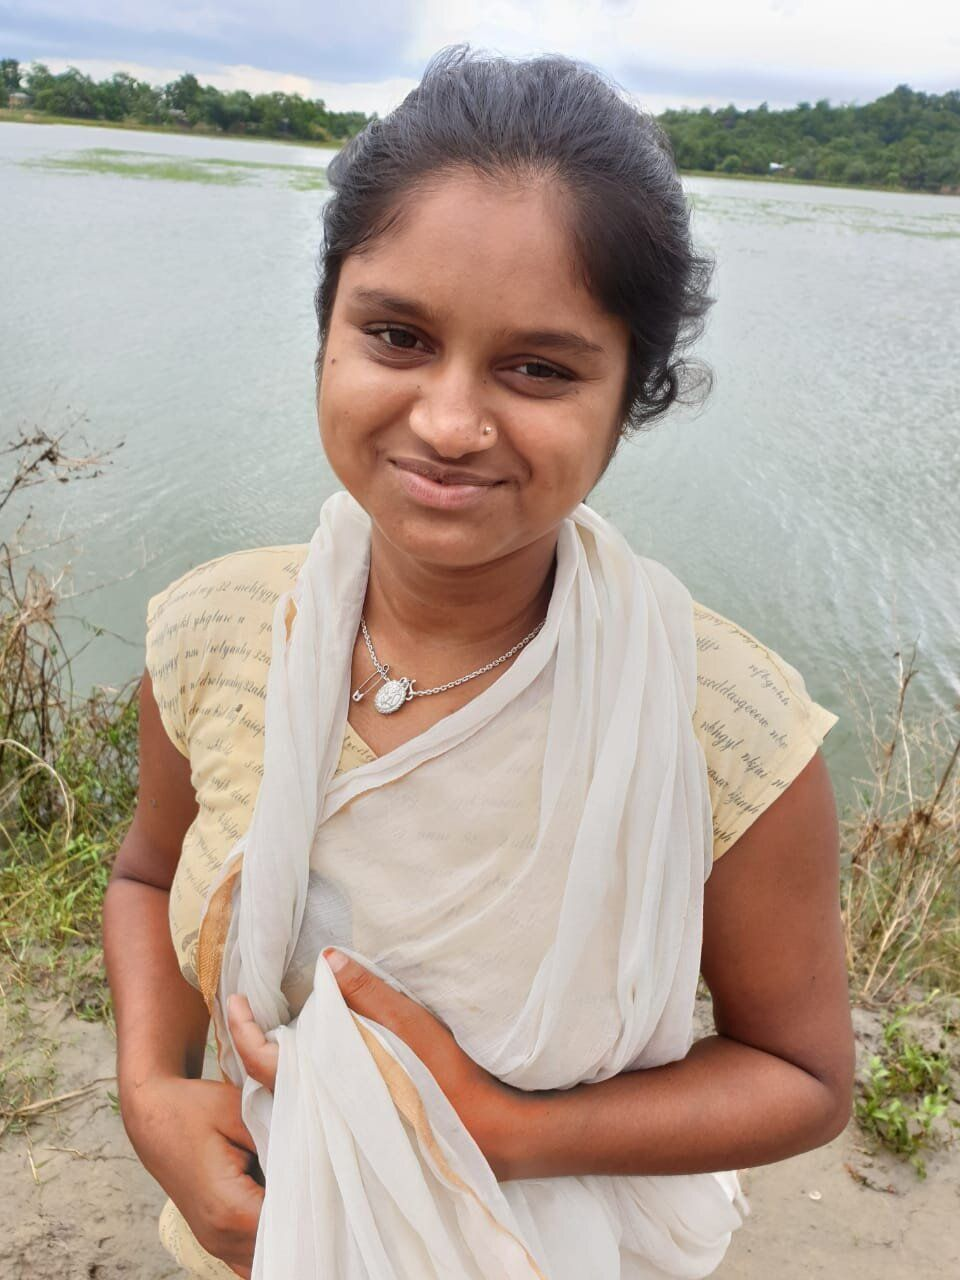 15-year-old Kalpana is uneducated, as she had to discontinue school after landing in a detention